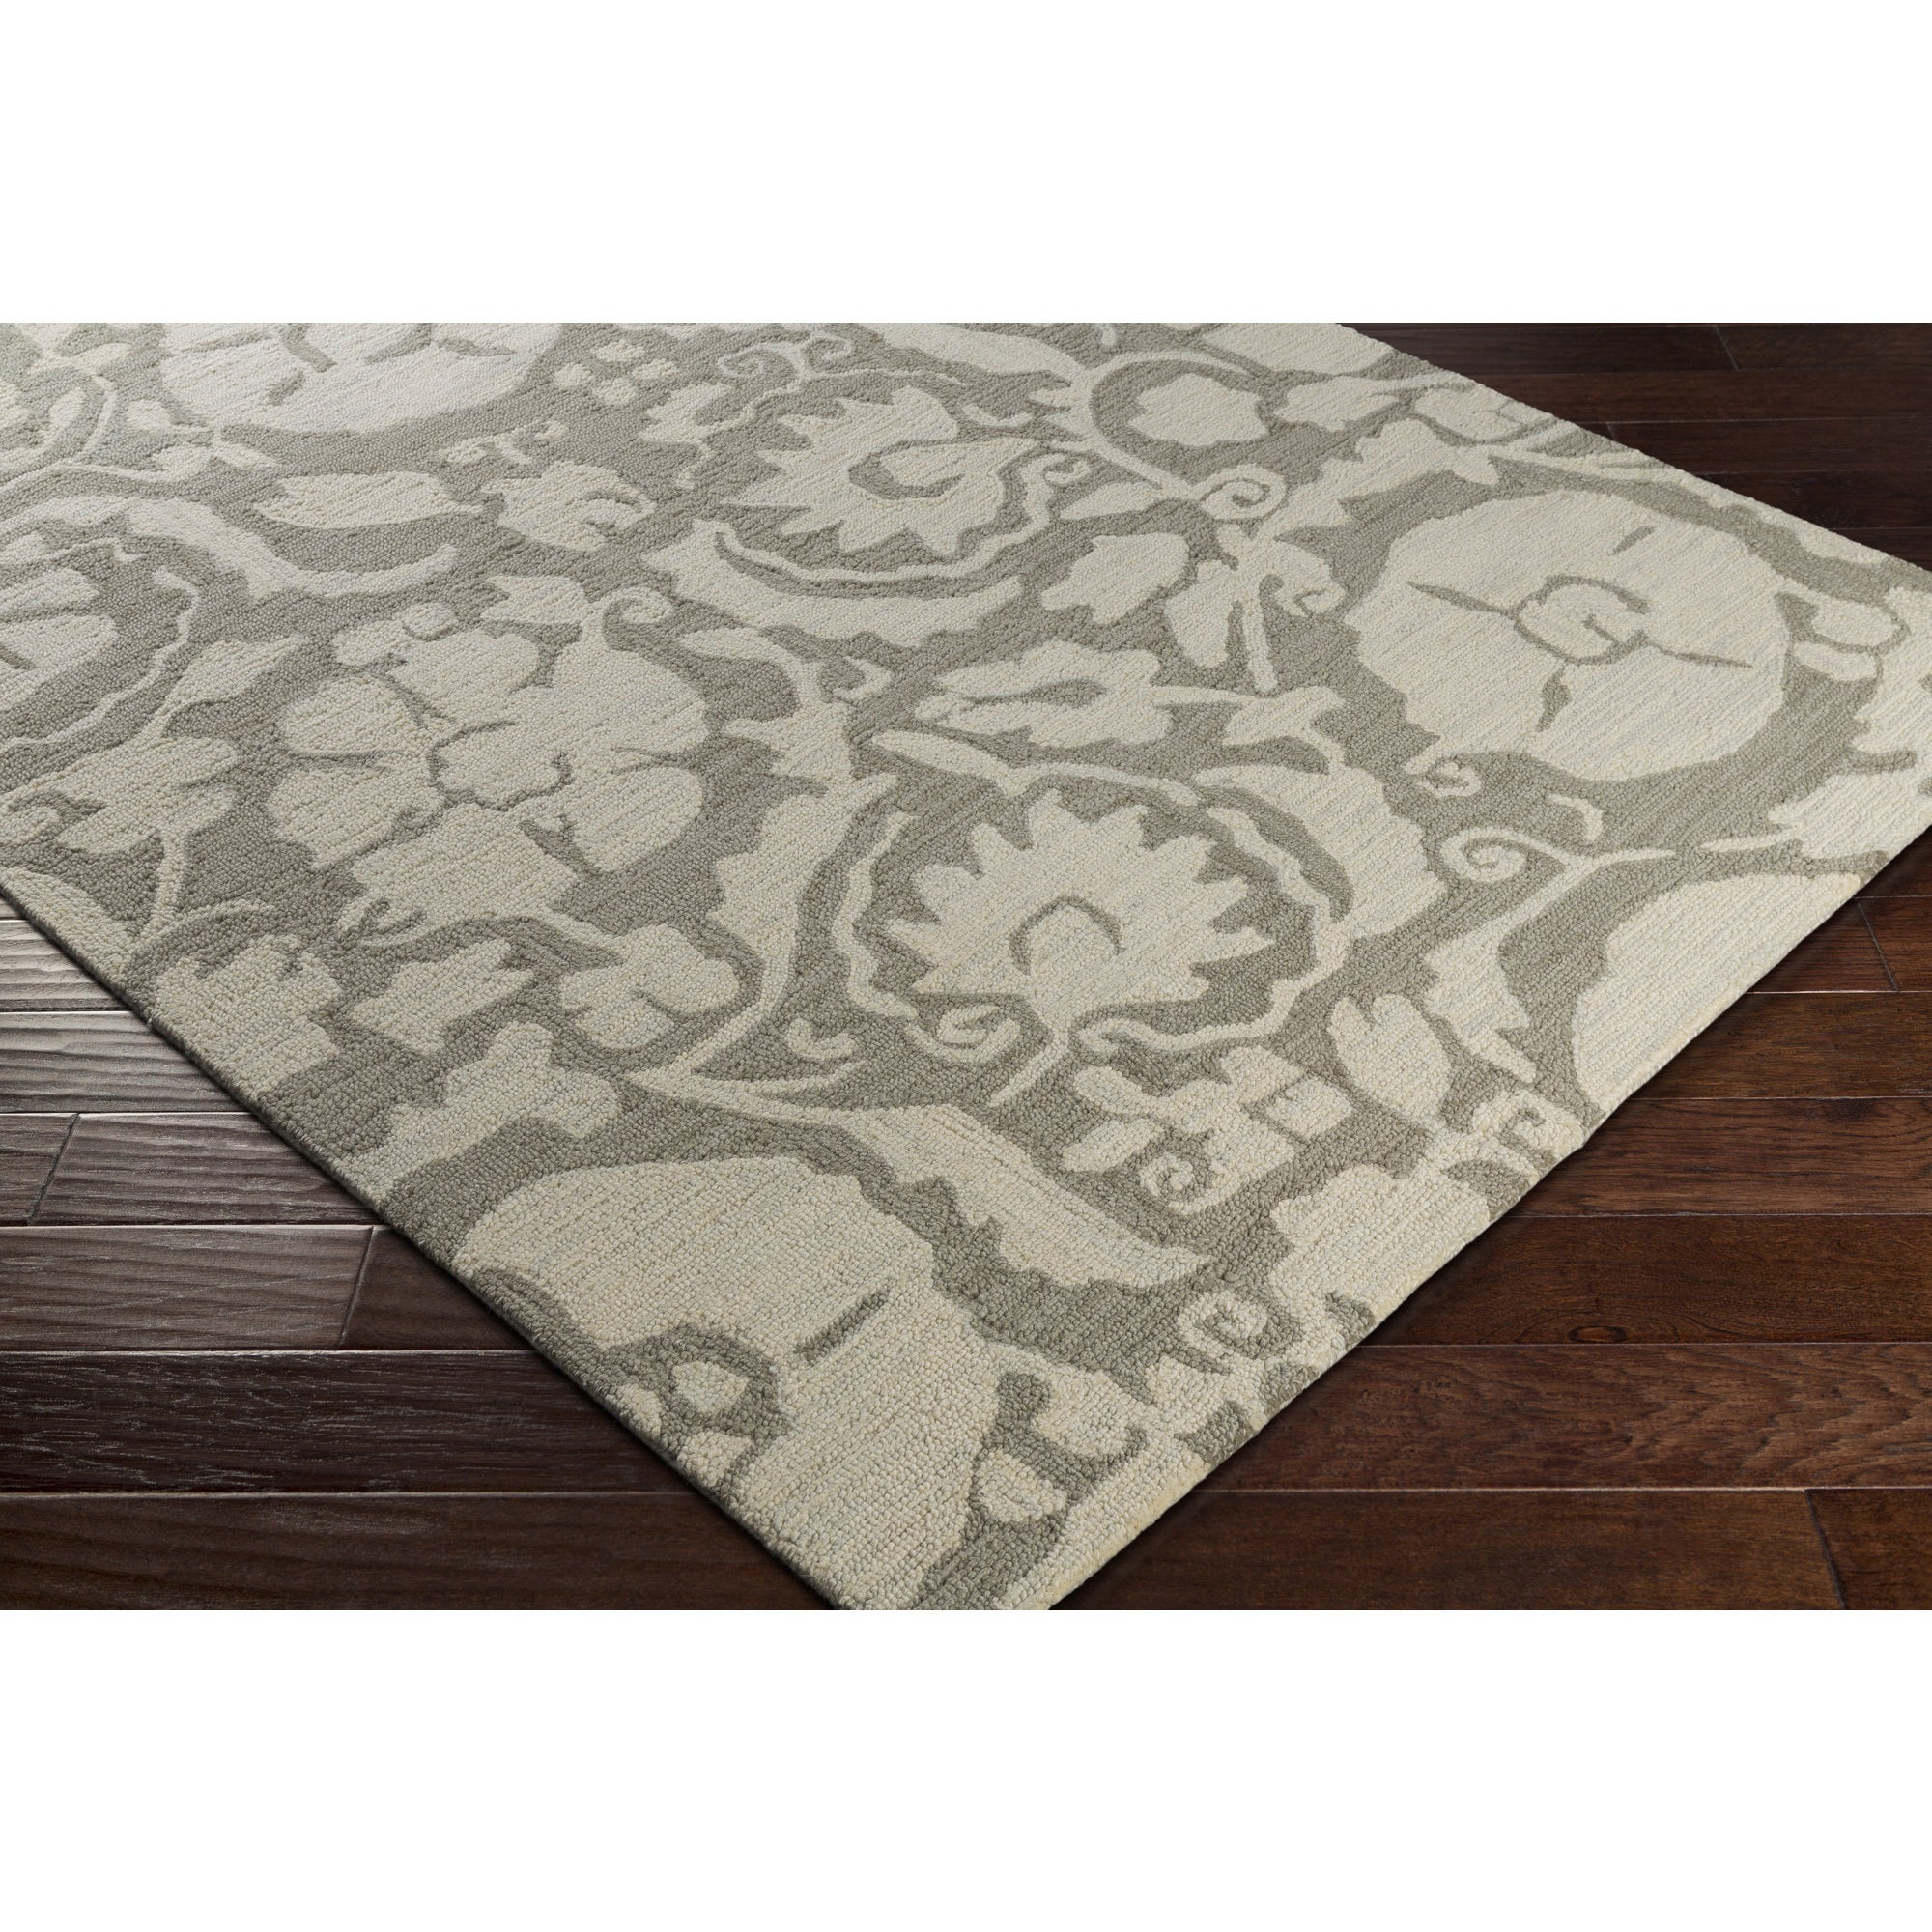 Hand-Tufted Atria Wool Area Rug (2' x 3')